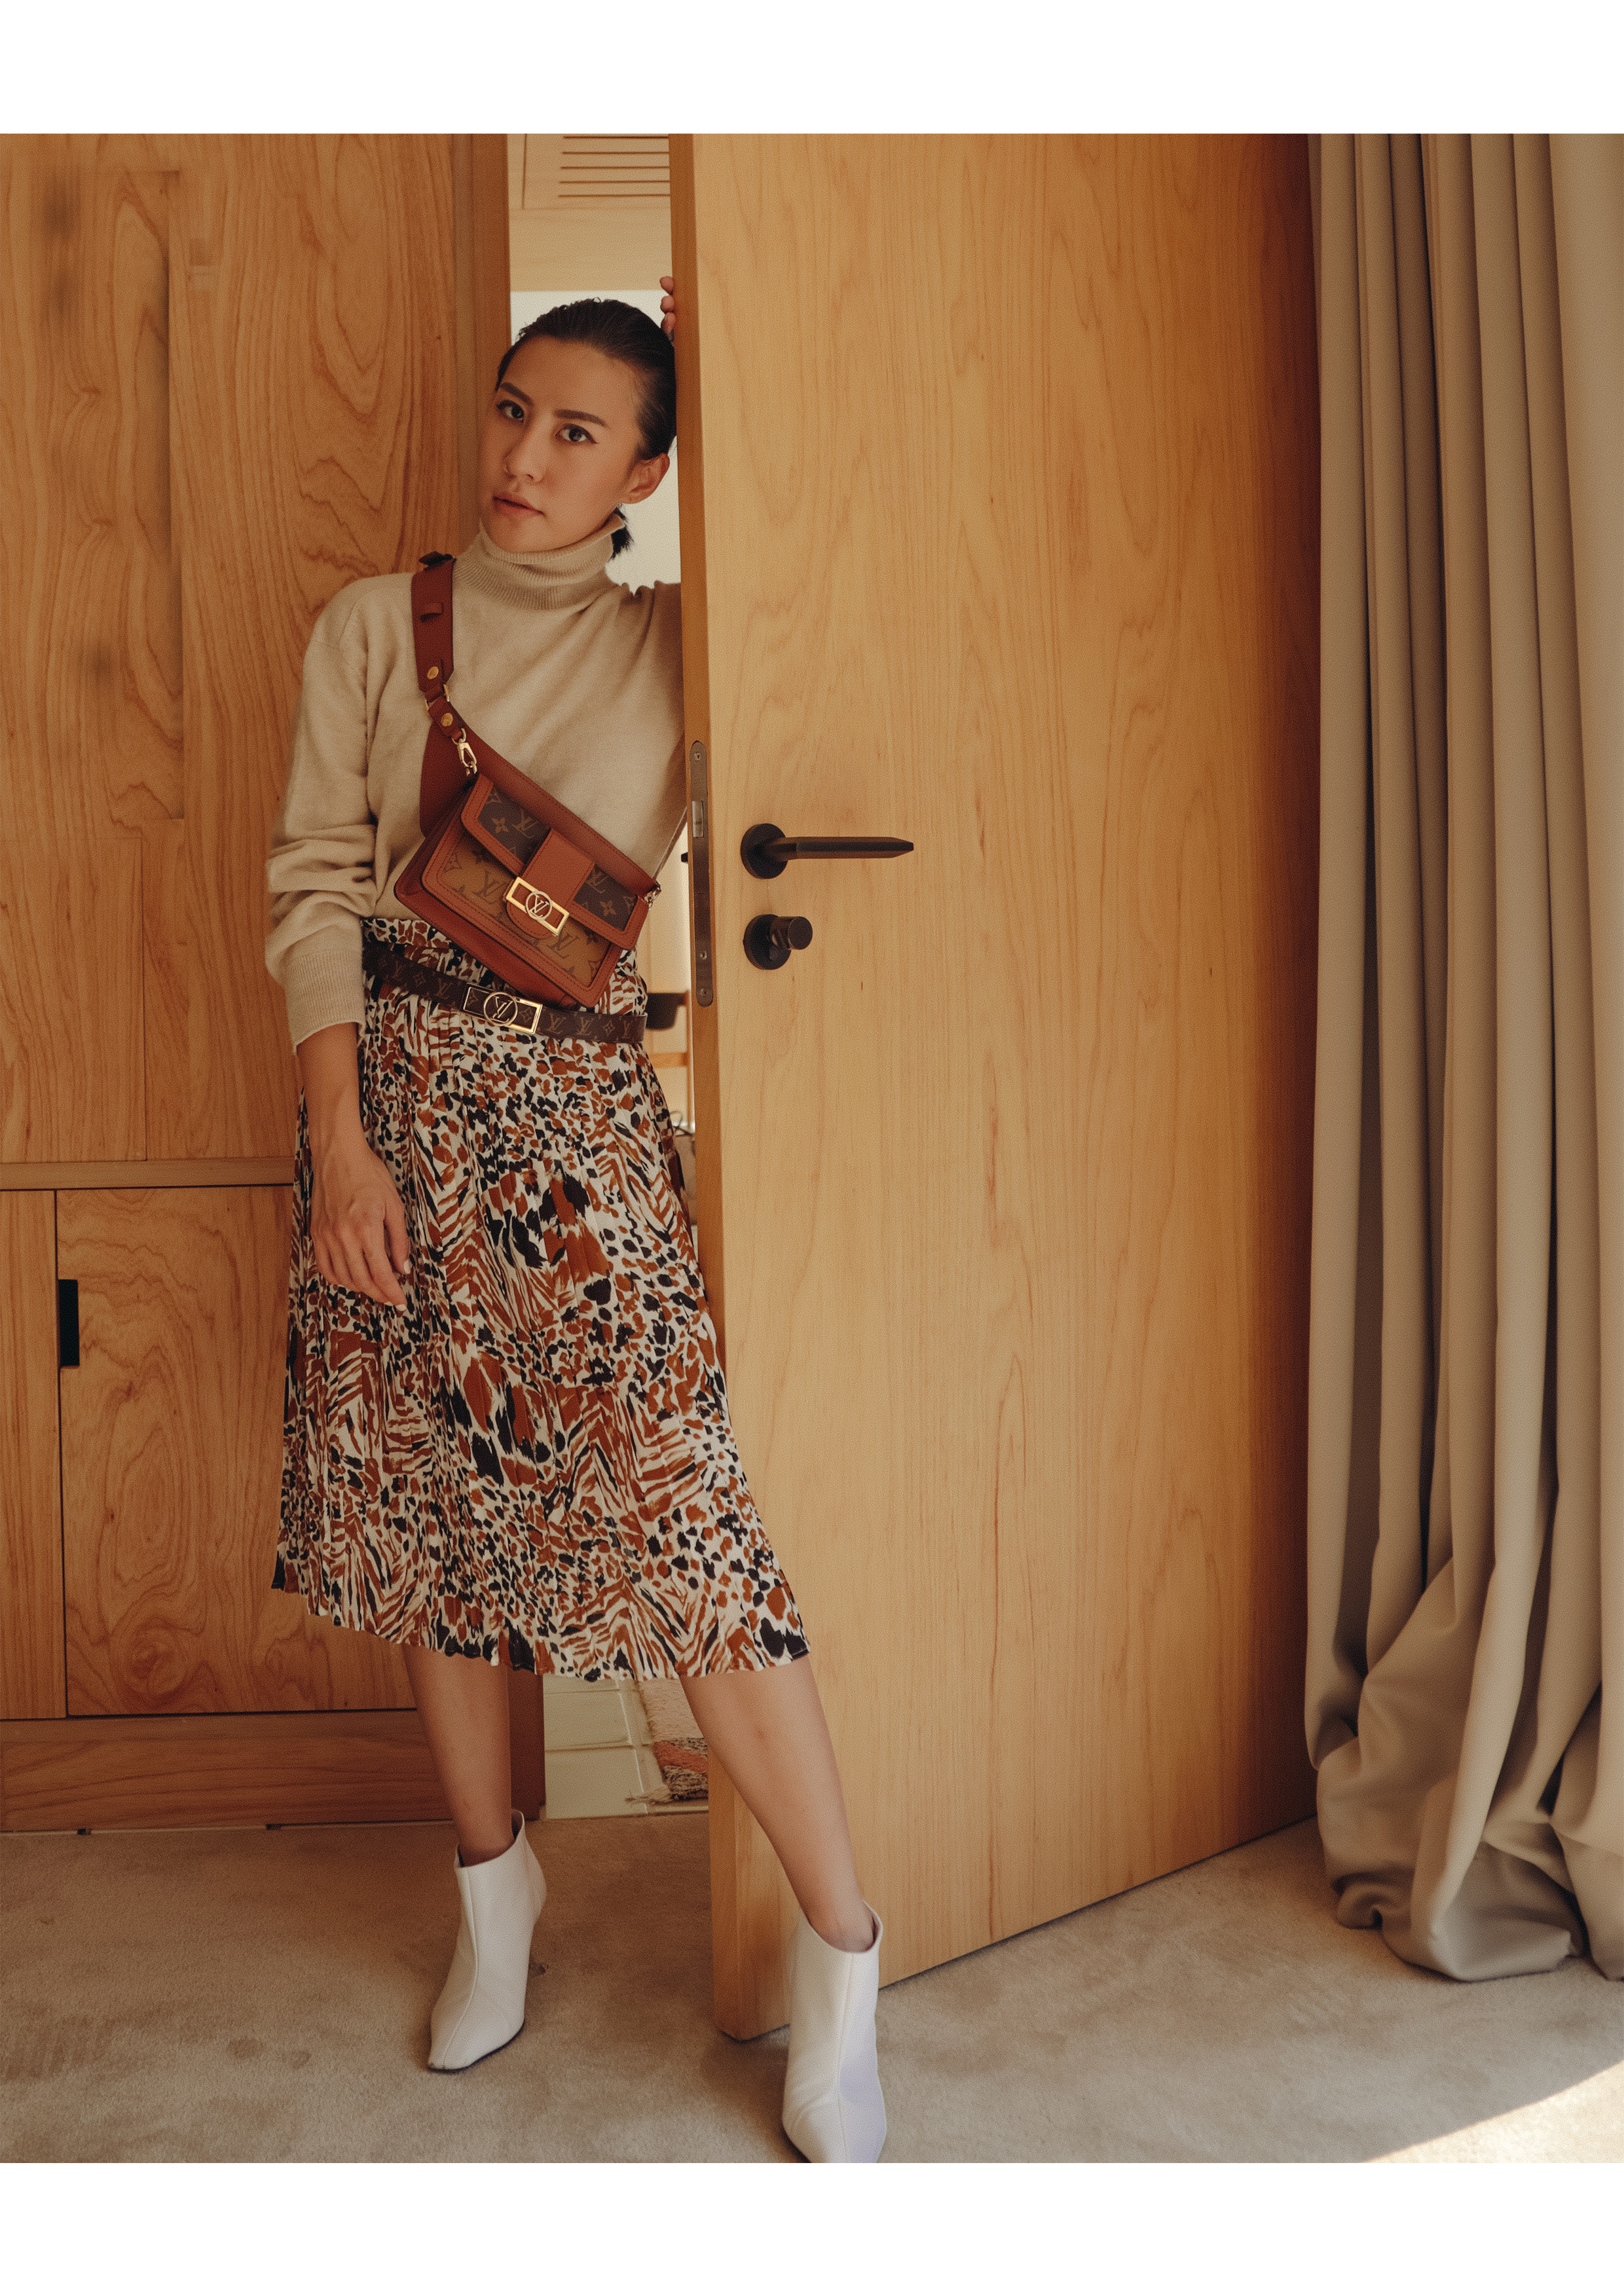 Featuring  Dauphine 25mm Reversible Belt ,  Printed Pleated Skirt , and  Mini Dauphine